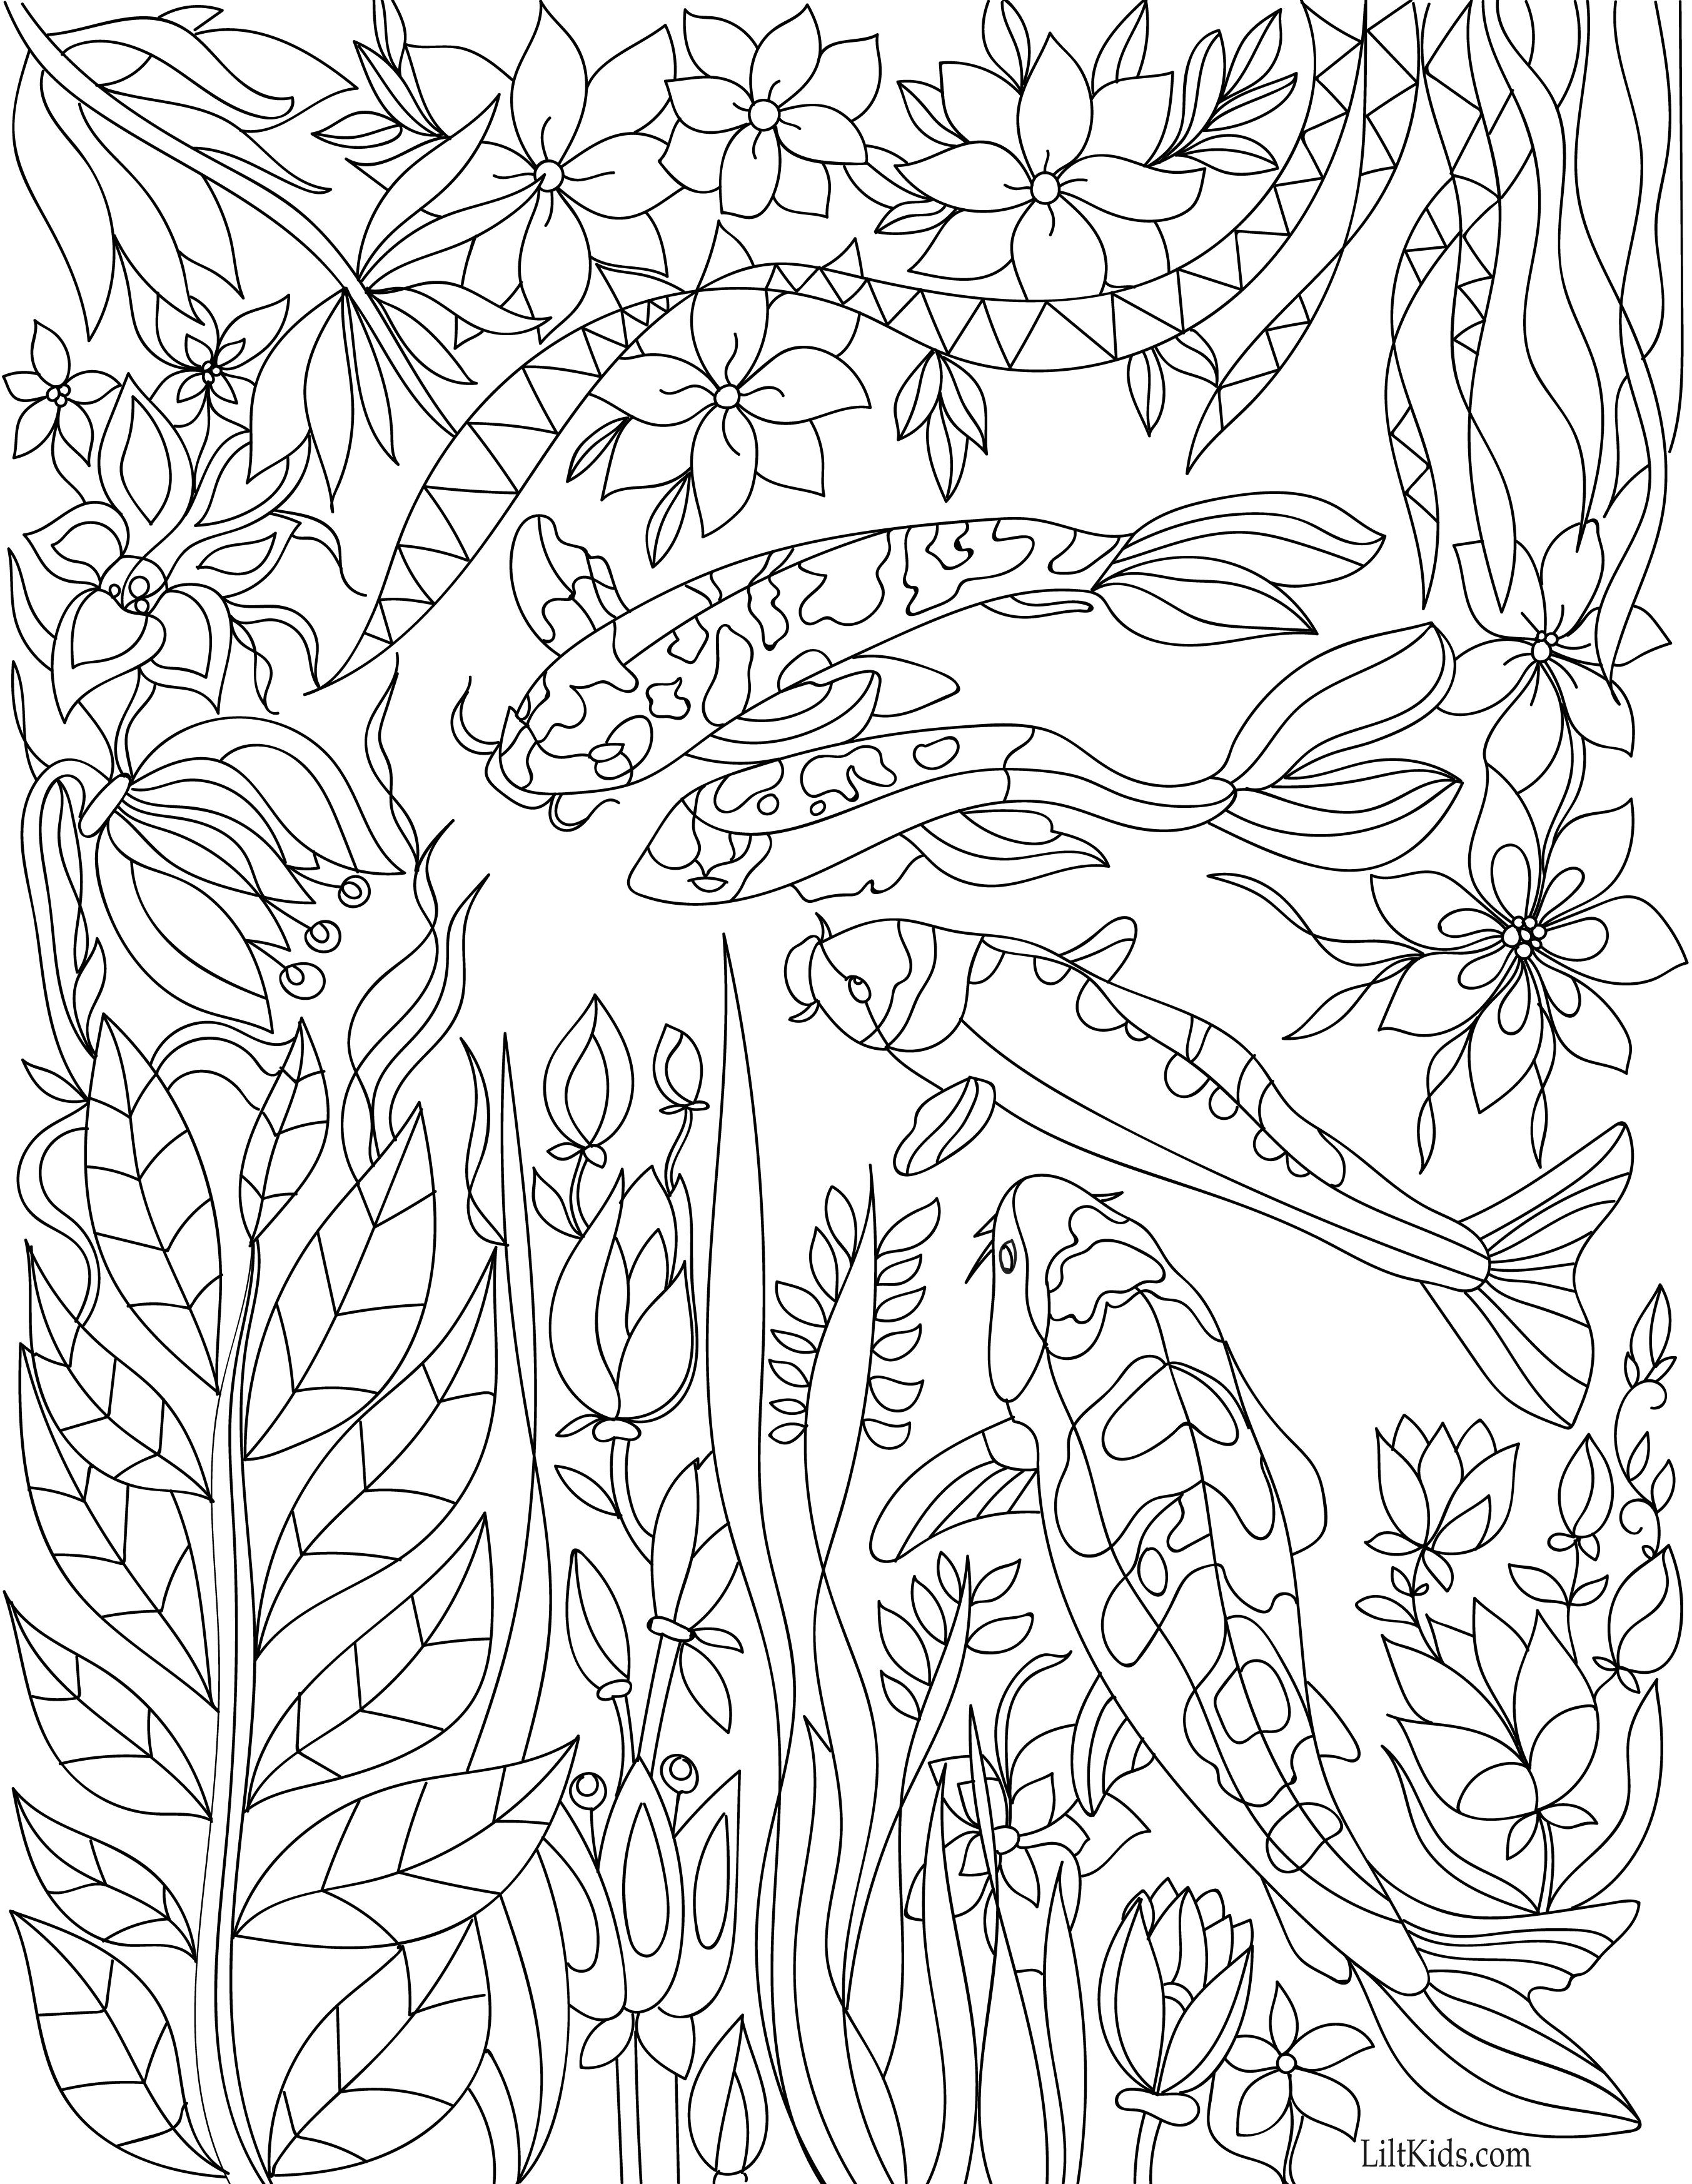 Pin On Free Adult Coloring Pages